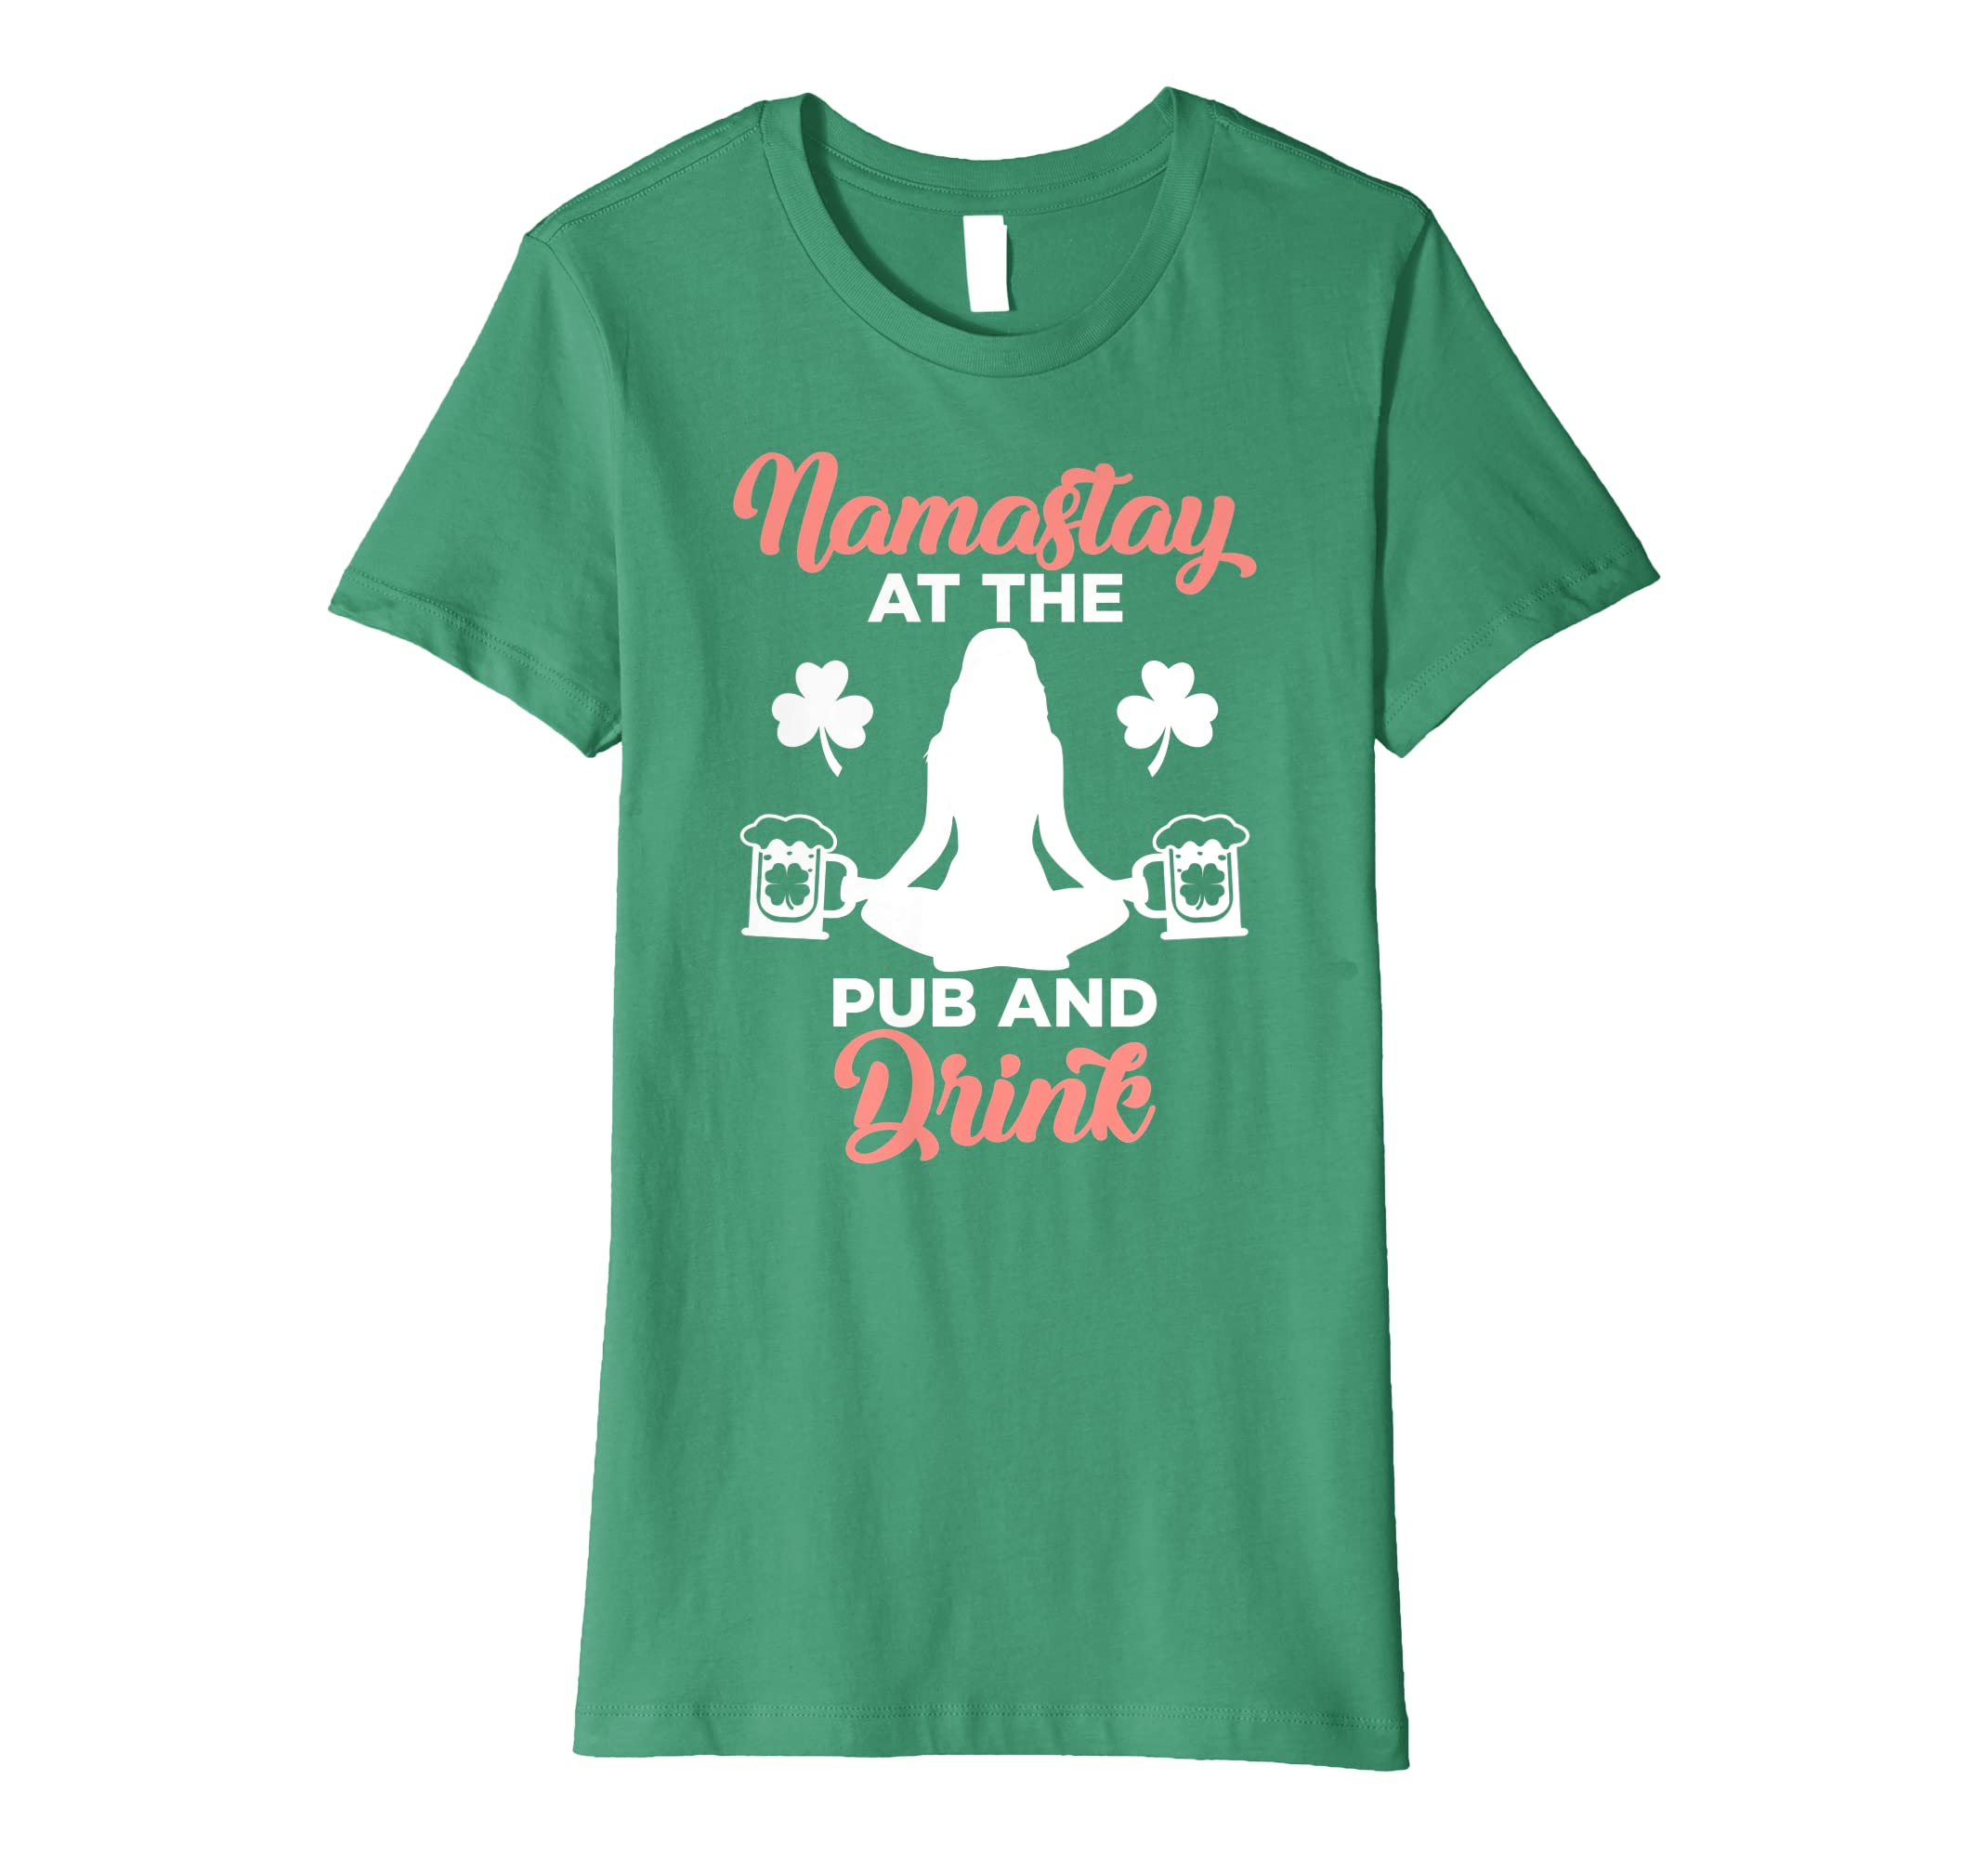 9ad7d04b66 Amazon.com: Namastay at the Pub and Drink St Patricks Day T Shirt Women:  Clothing